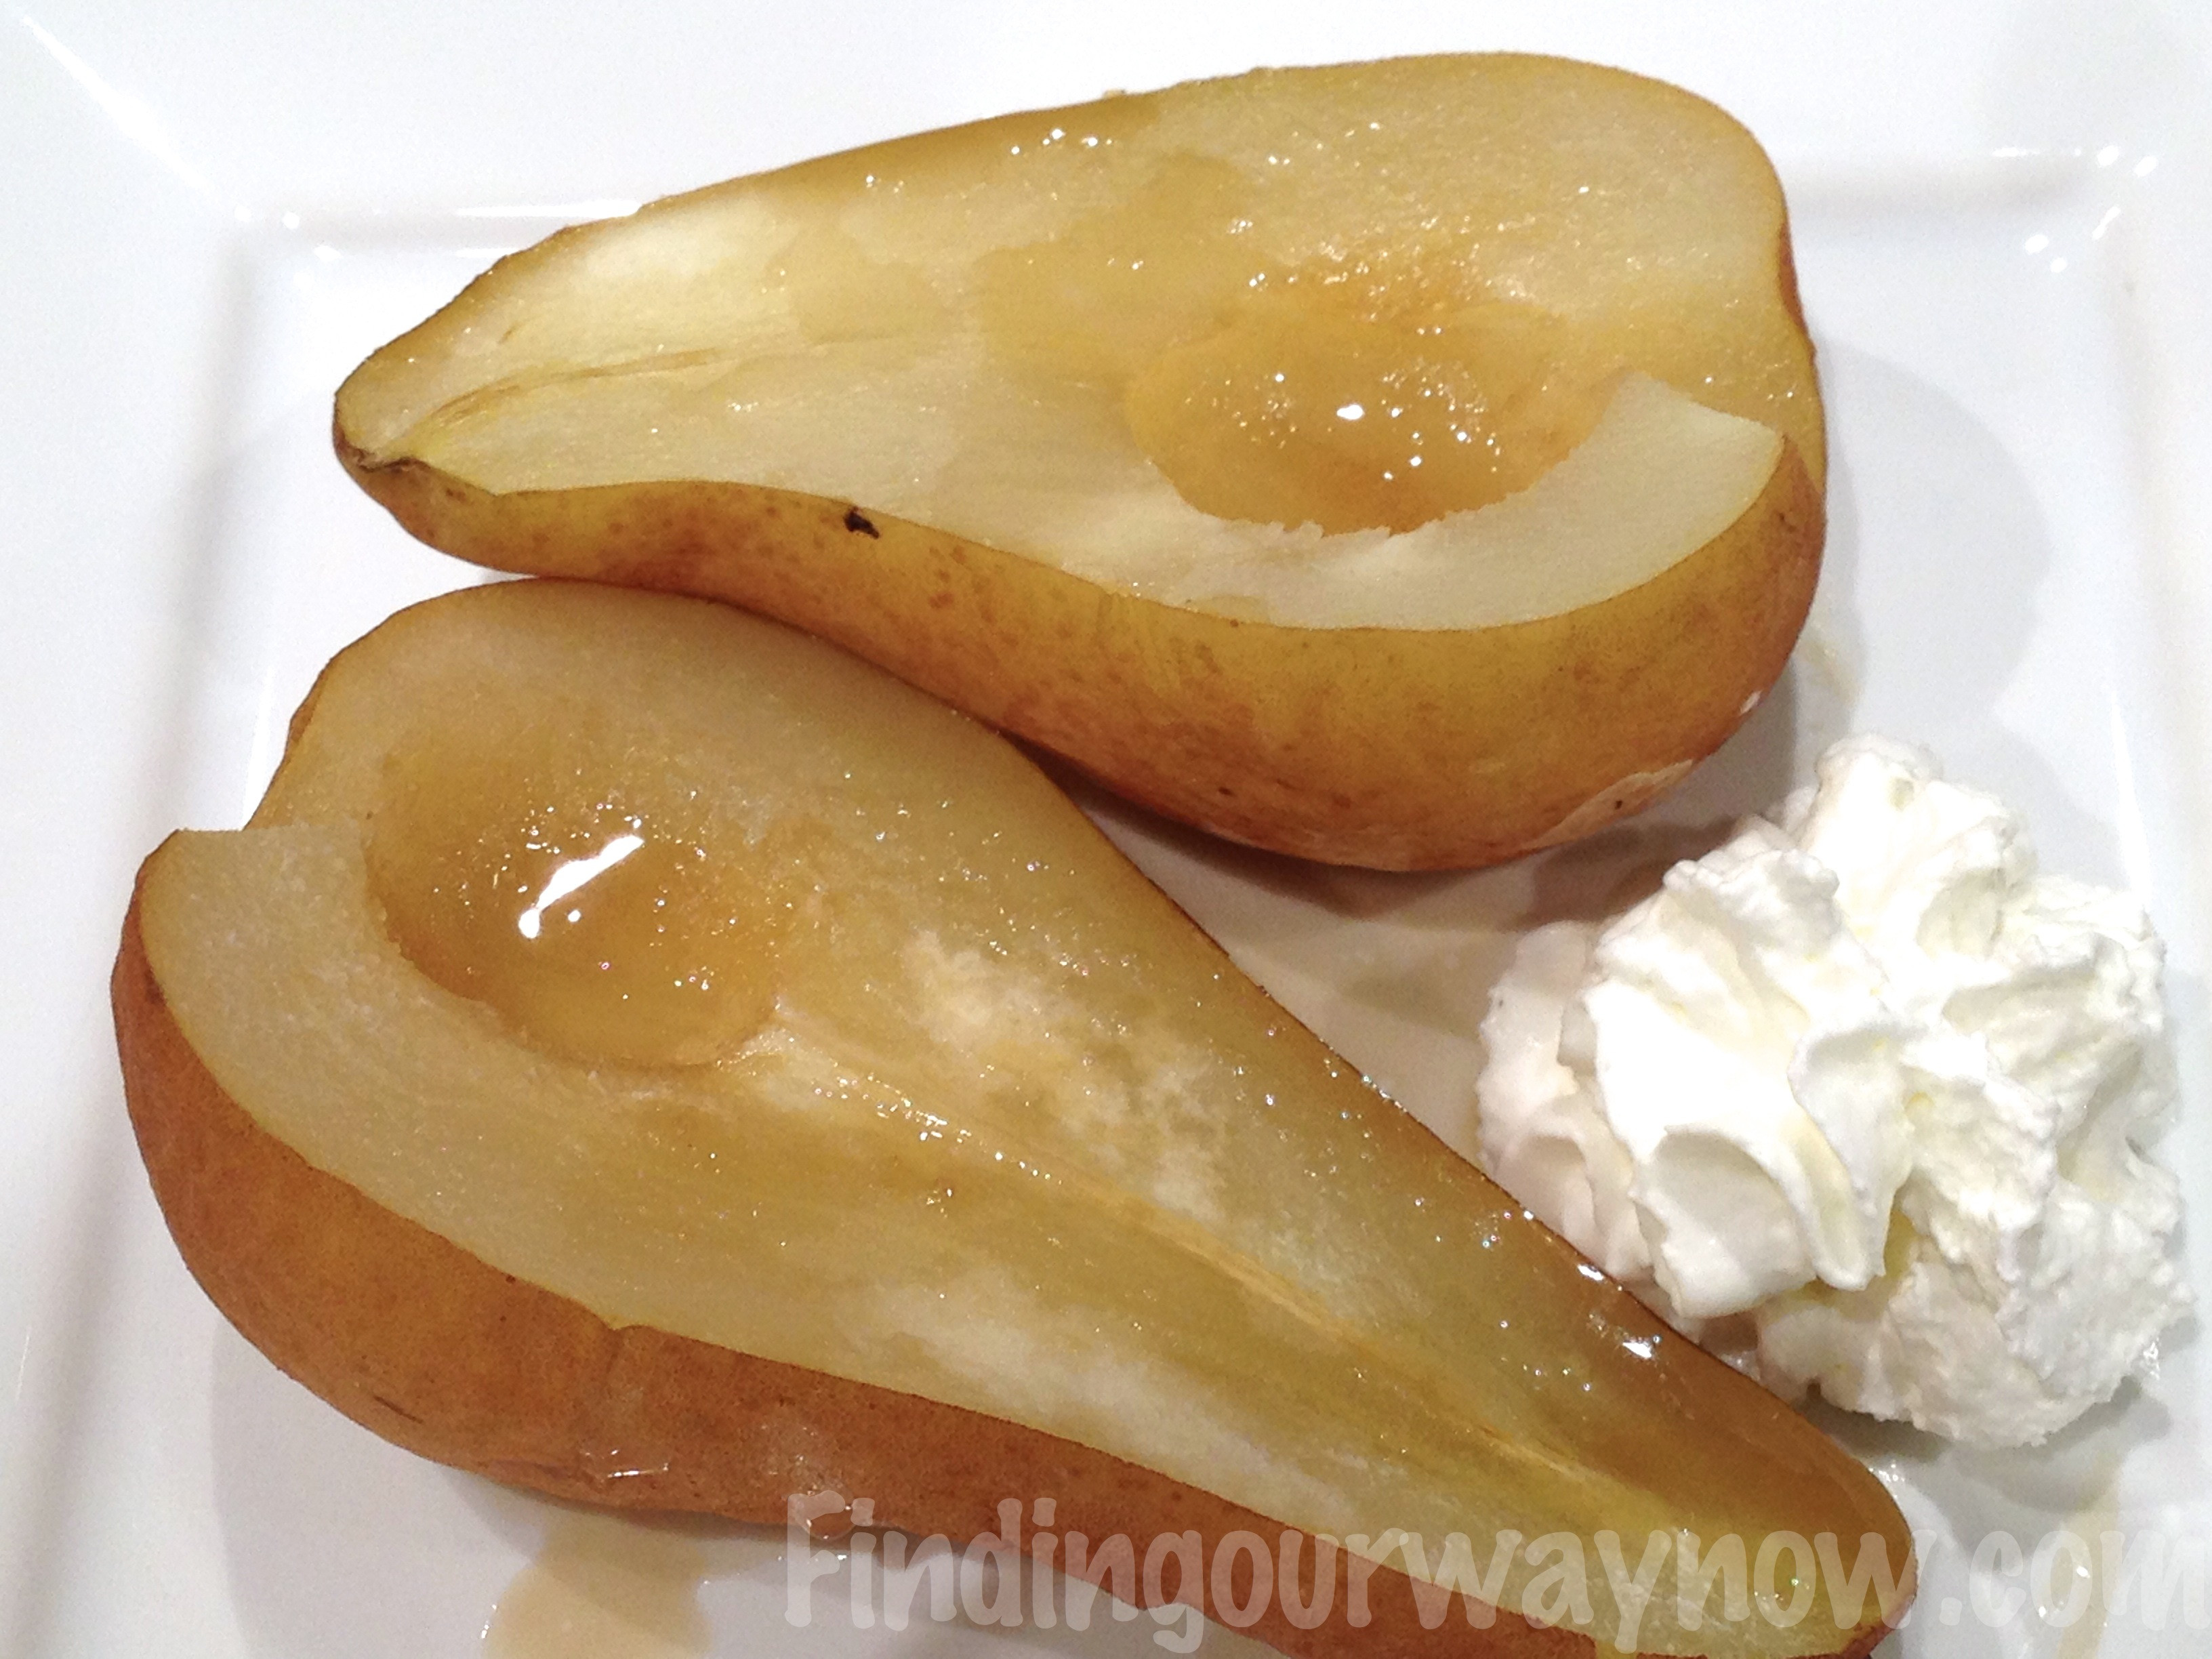 Easy Pear Dessert  Baked Pears In The Microwave Recipe Finding Our Way Now